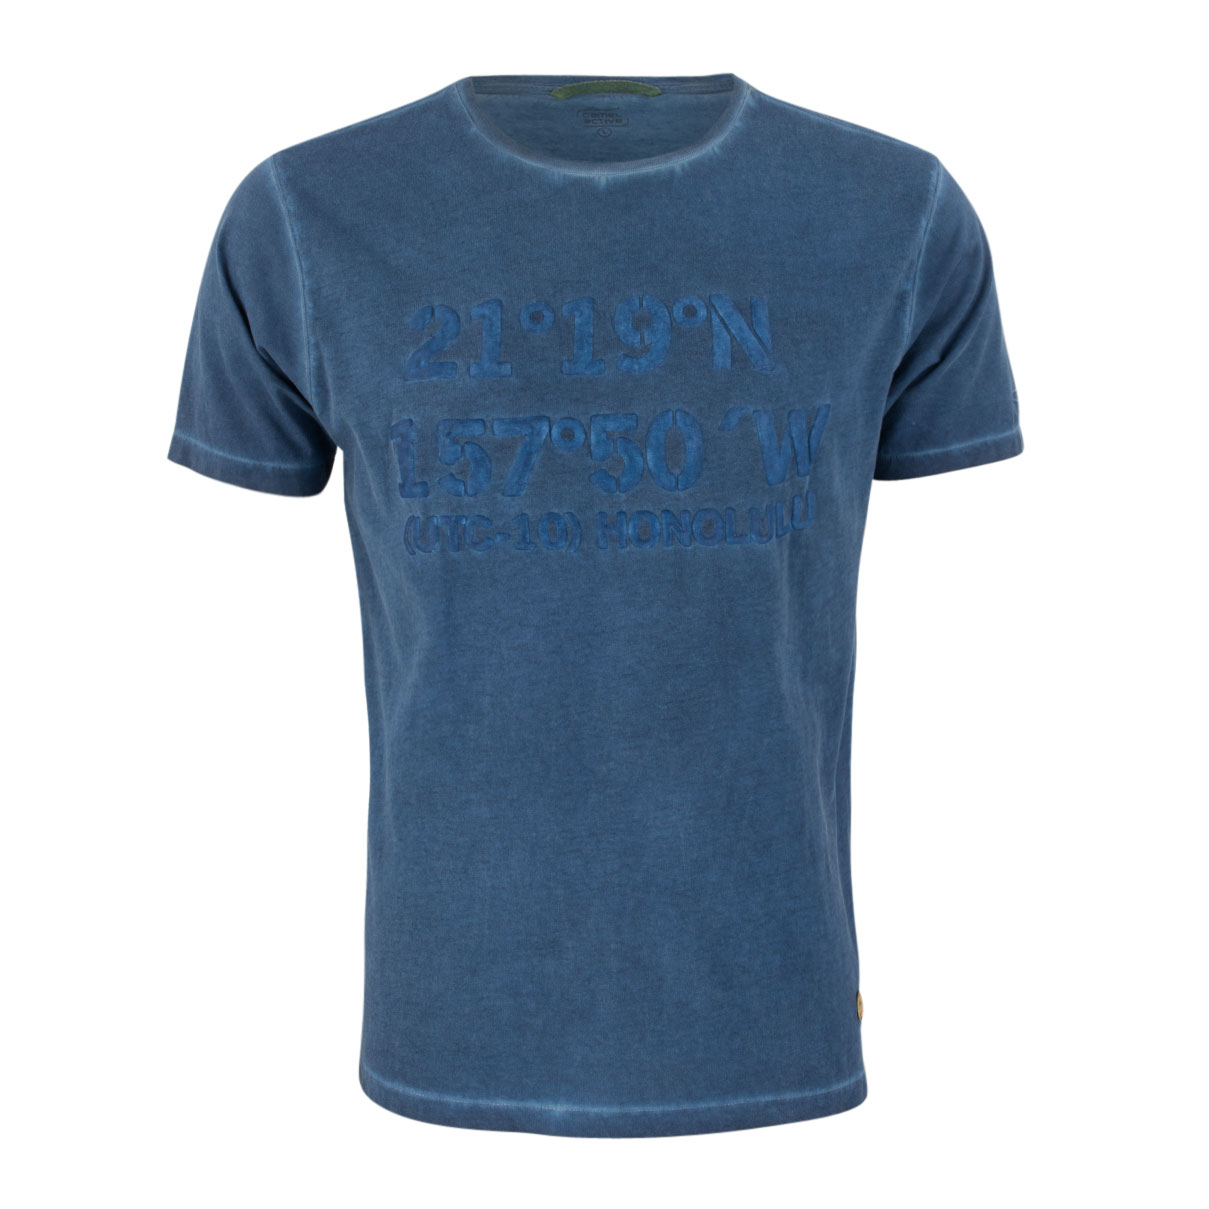 T shirt fitted print von camel active online kaufen for T shirt printing stonecrest mall